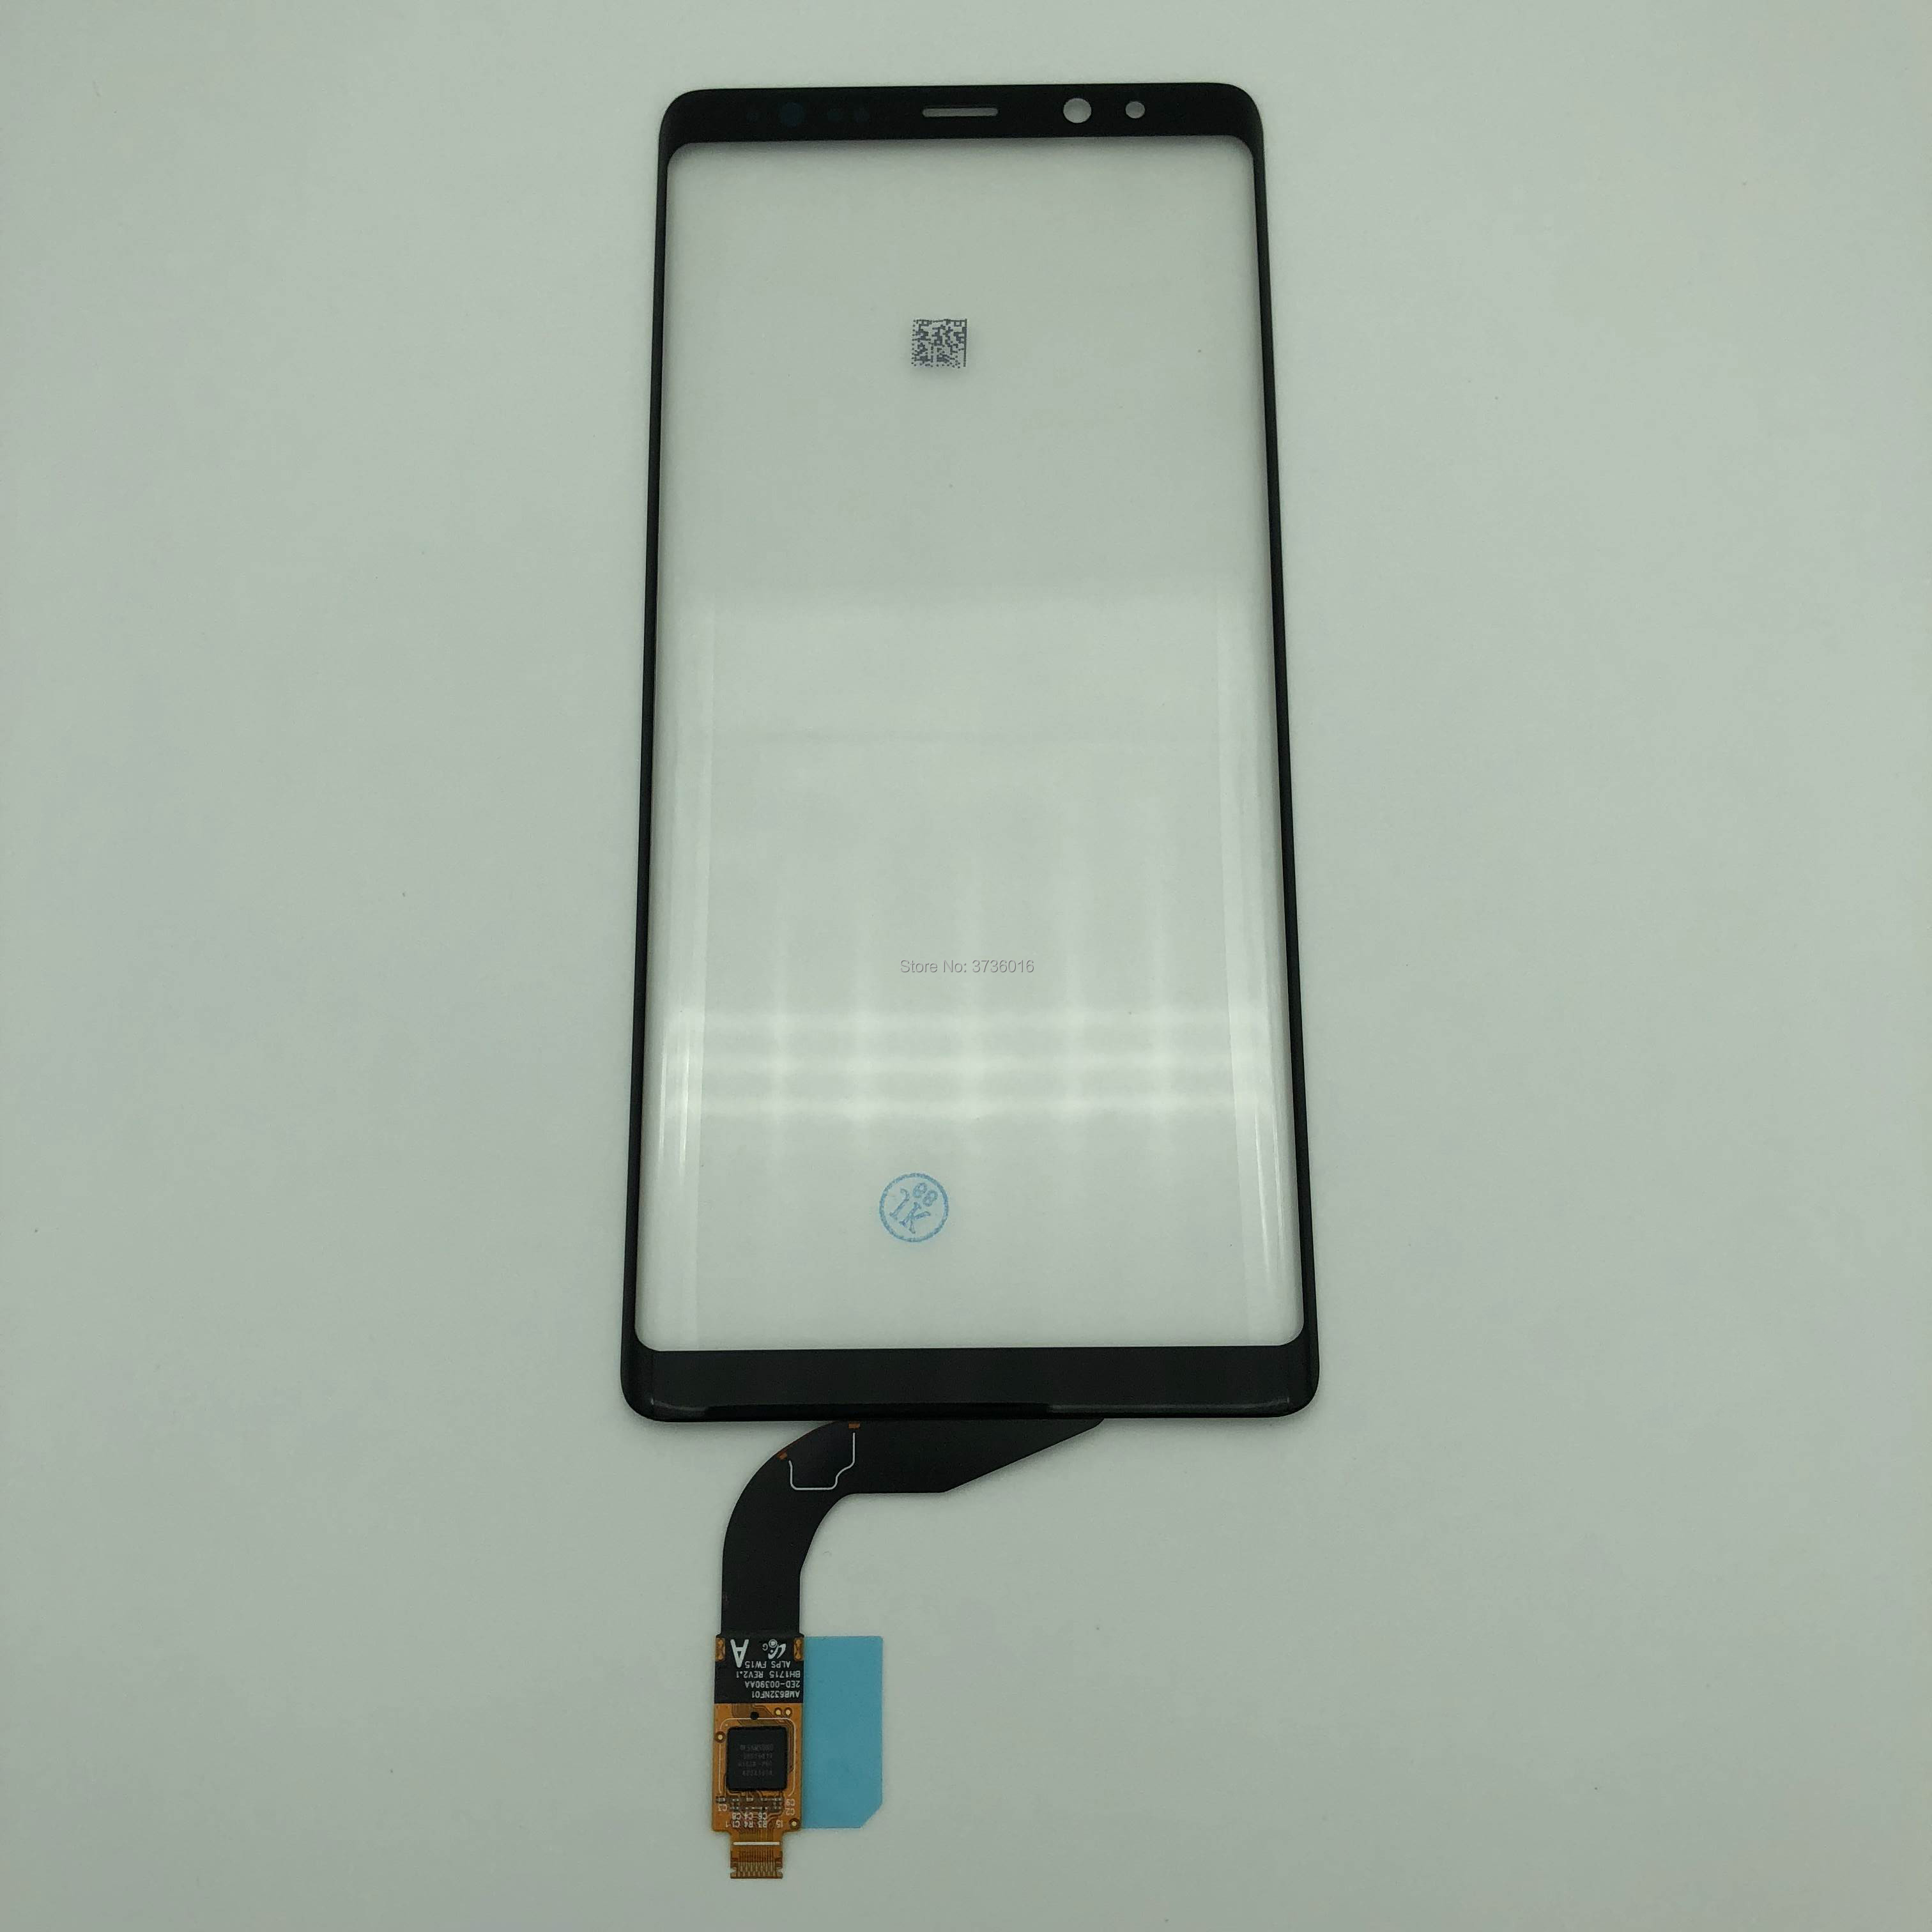 Digitizer Front Glass with touch For samsung Note 8 damaged LCD touch screen front panel with flex cable replacement repairDigitizer Front Glass with touch For samsung Note 8 damaged LCD touch screen front panel with flex cable replacement repair